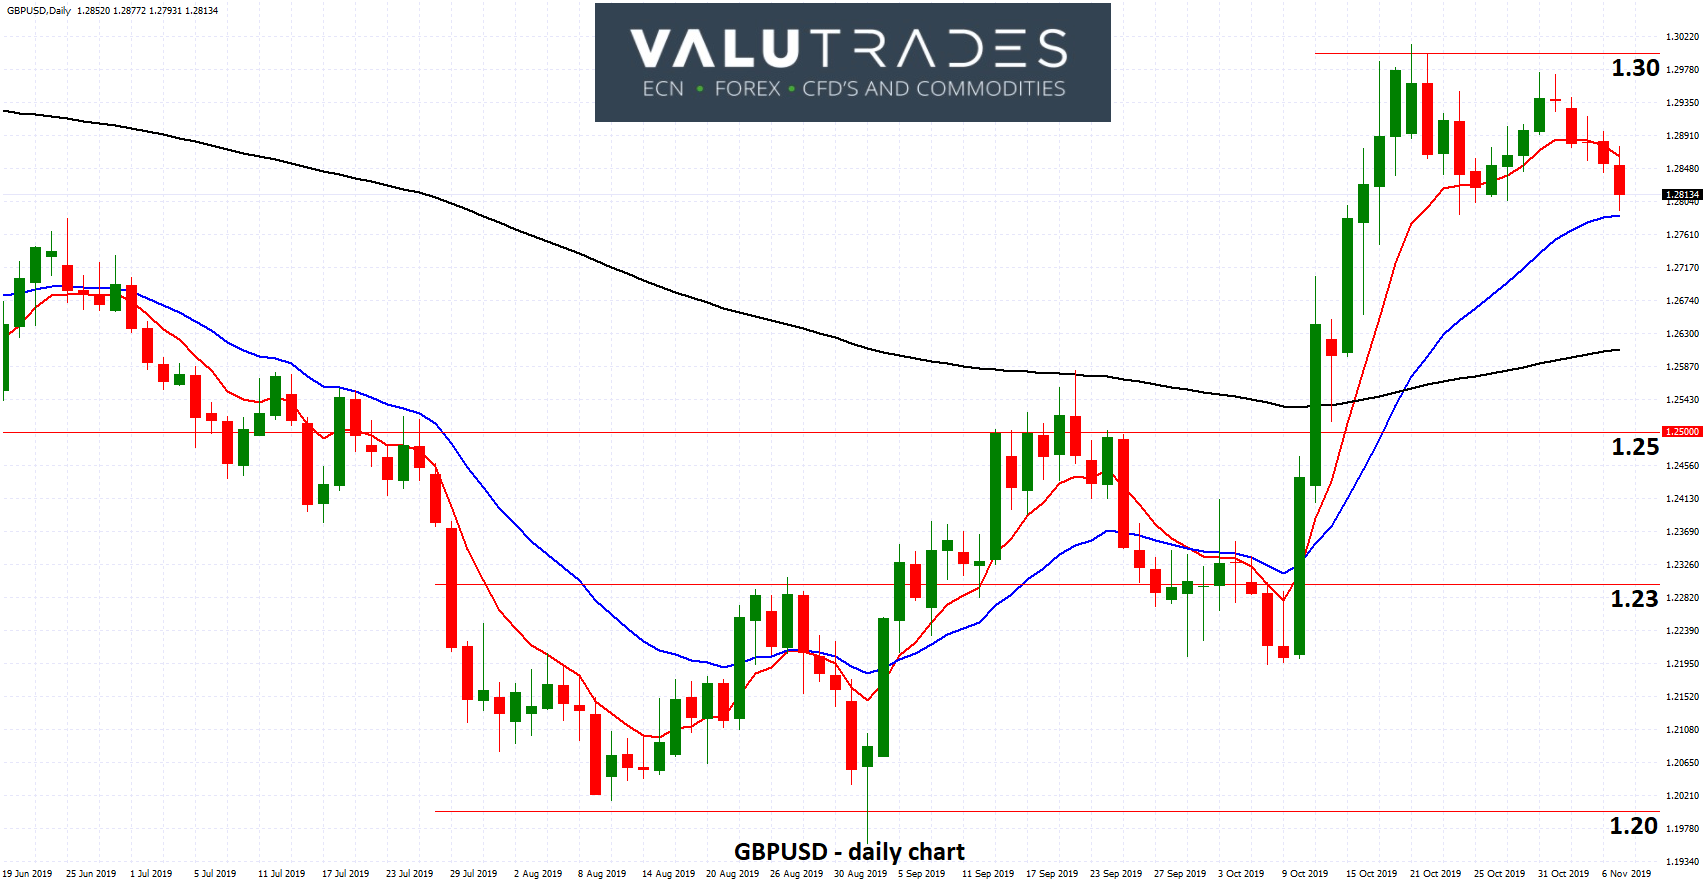 GBPUSD - Eases Towards 1.28 after BOE Sits on Rates